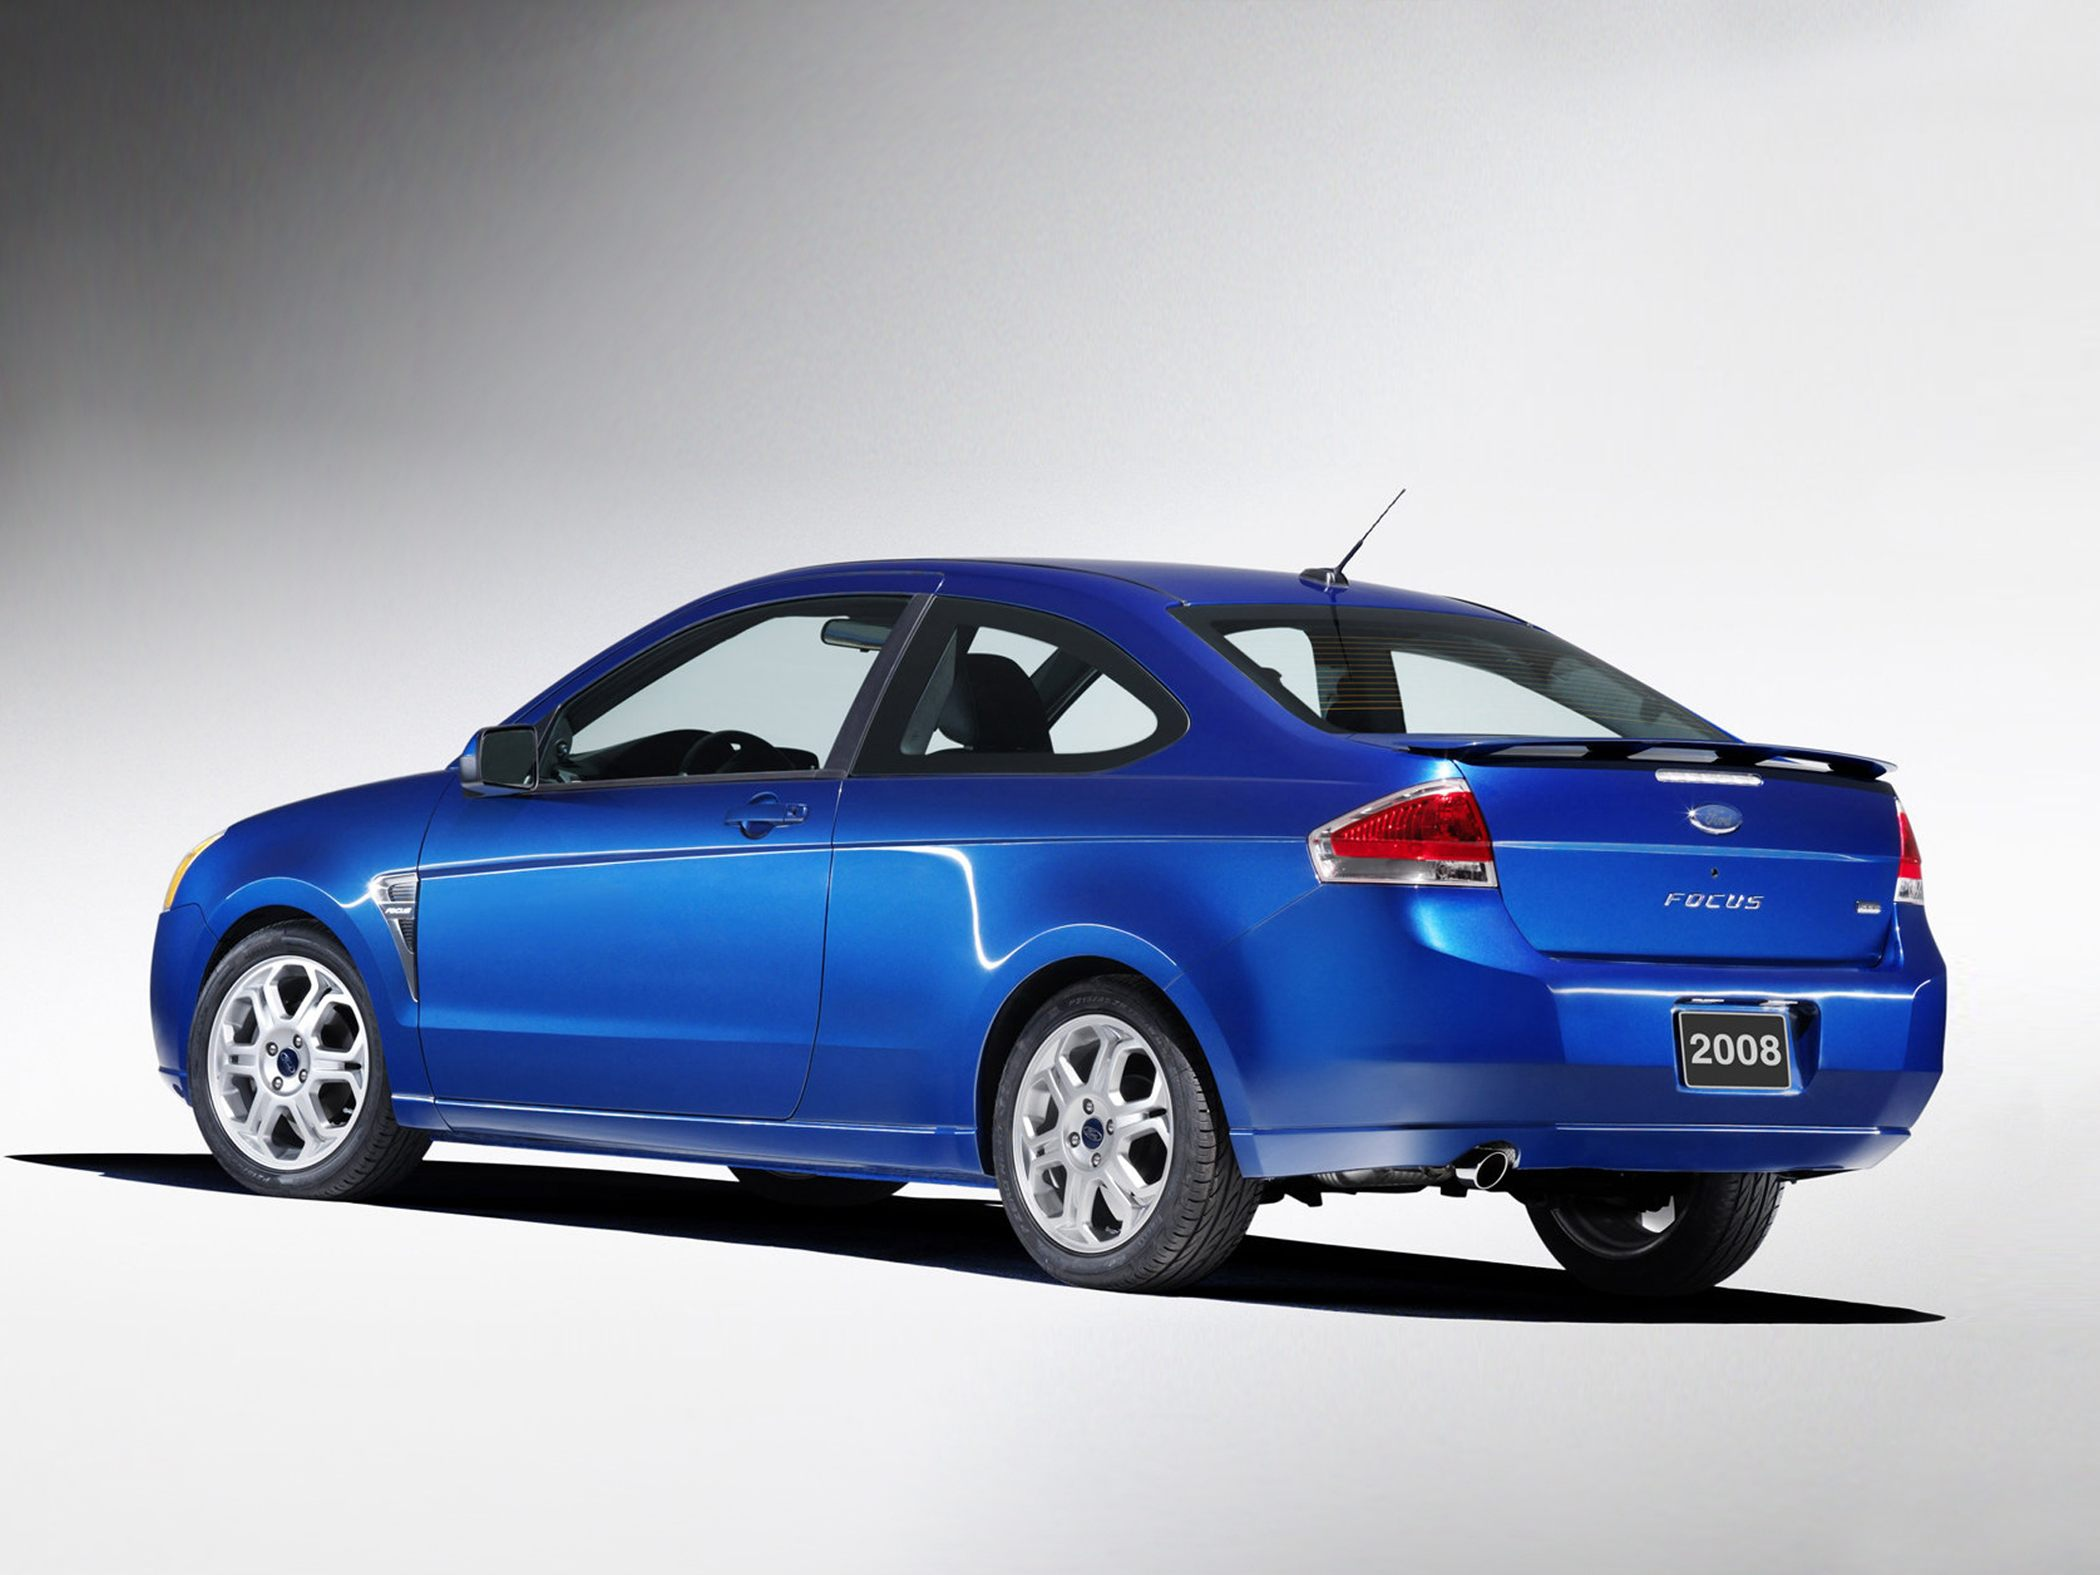 ford focus ii coupe 2010 models #11